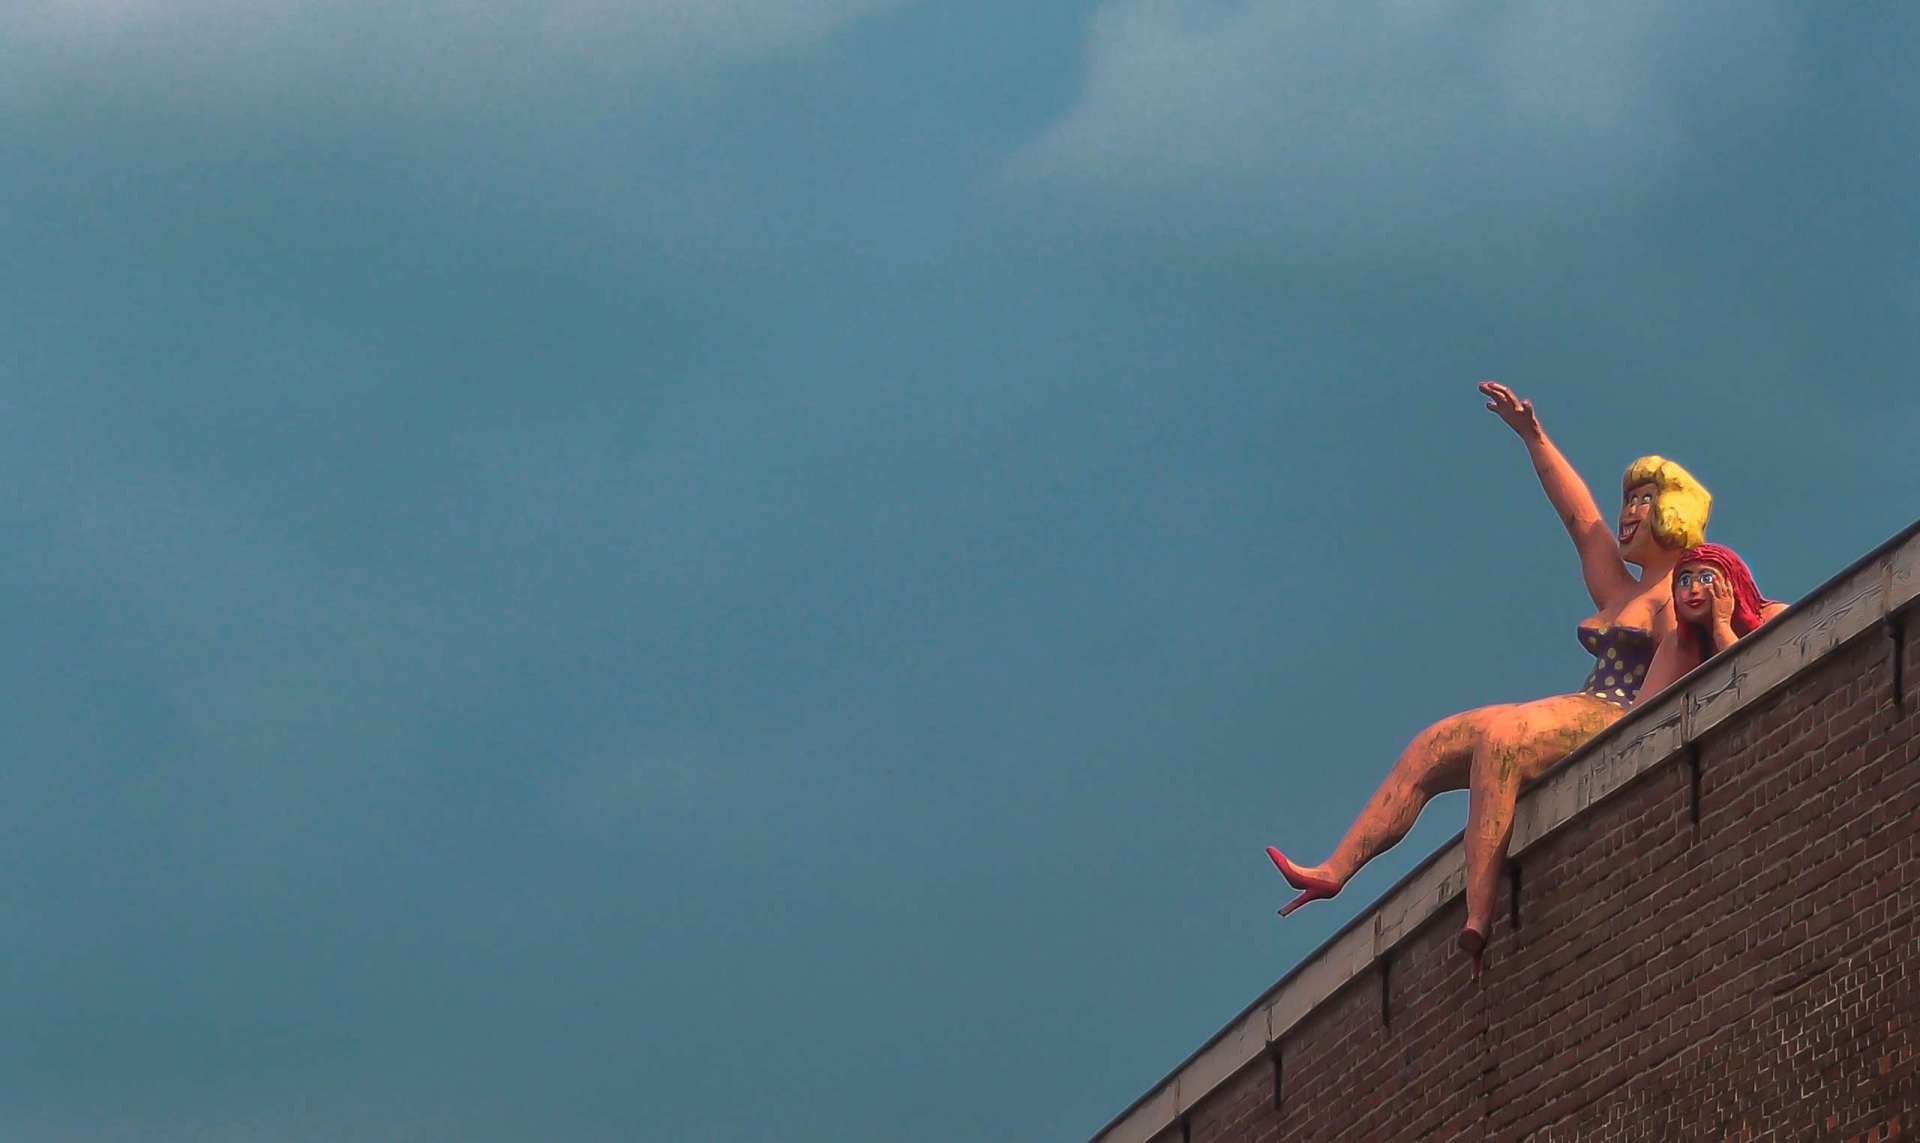 Two sex dolls sitting on a rooftop.